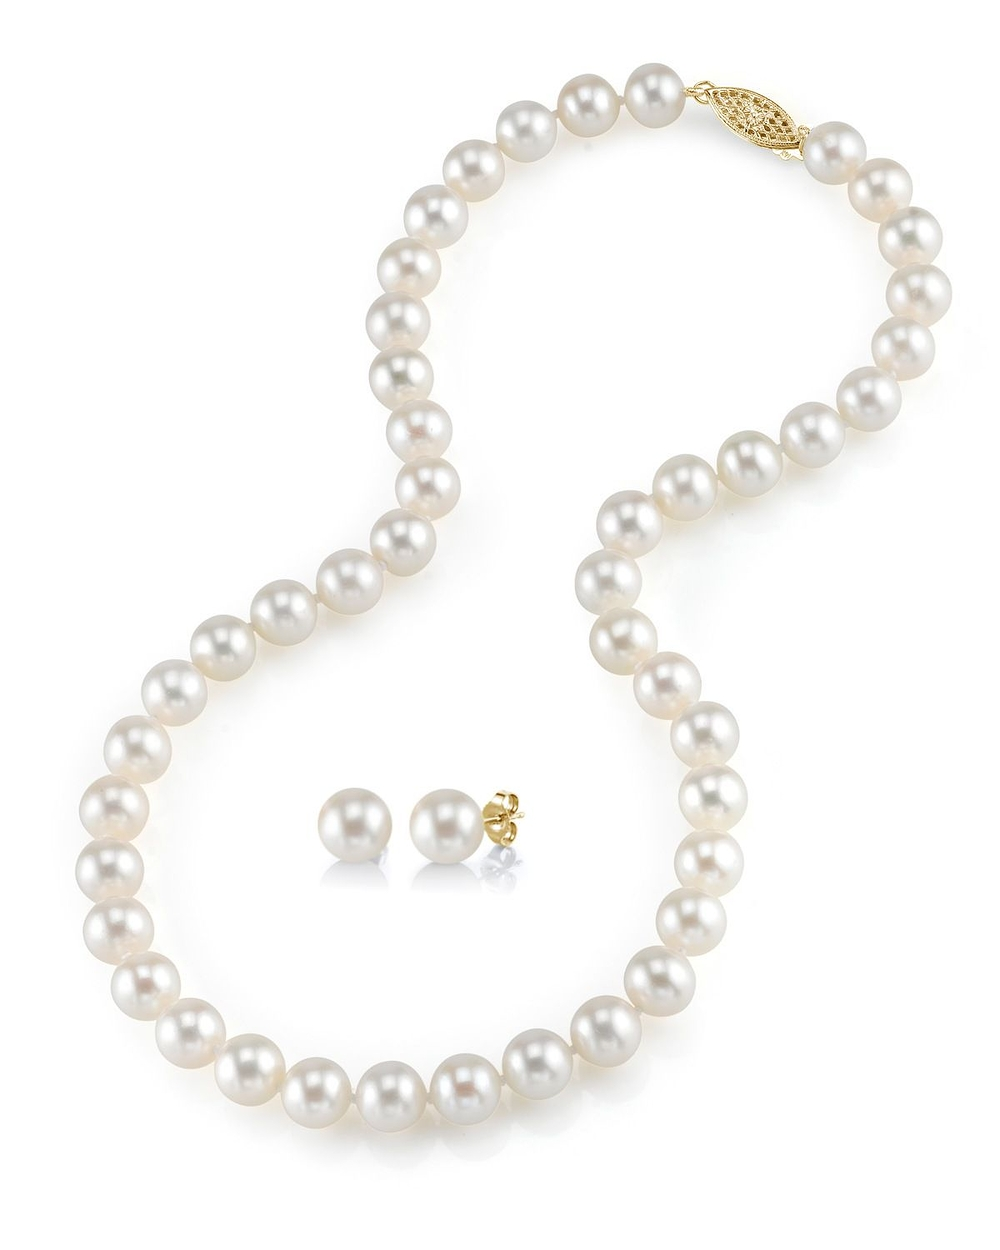 Necklace With A Pearl: 7-8mm Freshwater Pearl Necklace & Earrings